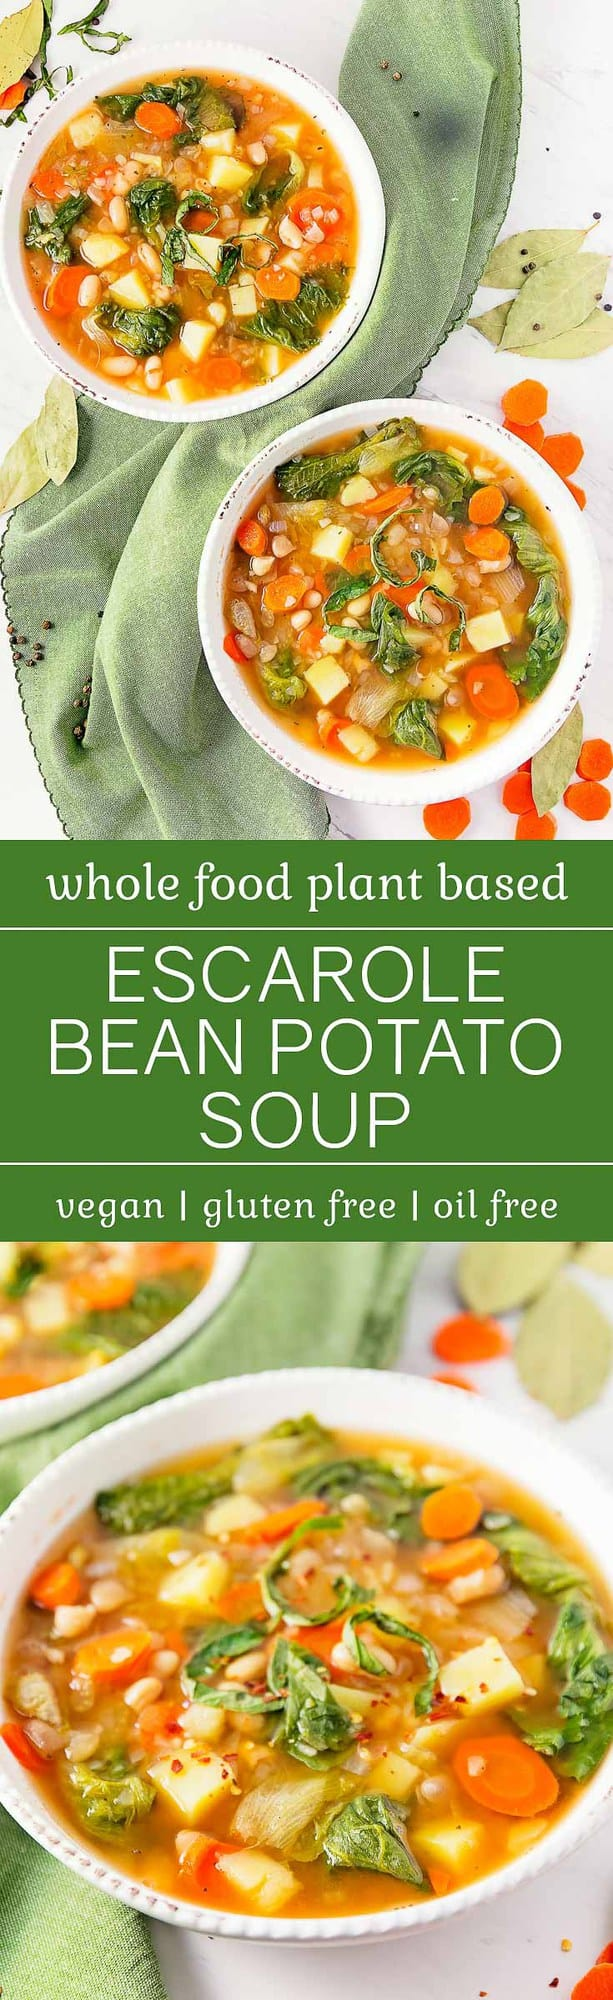 Escarole Bean Potato Soup, plant based, vegan, vegetarian, whole food plant based, gluten free, recipe, wfpb, healthy, healthy vegan, oil free, no refined sugar, no oil, refined sugar free, dairy free, dinner party, entertaining, soup